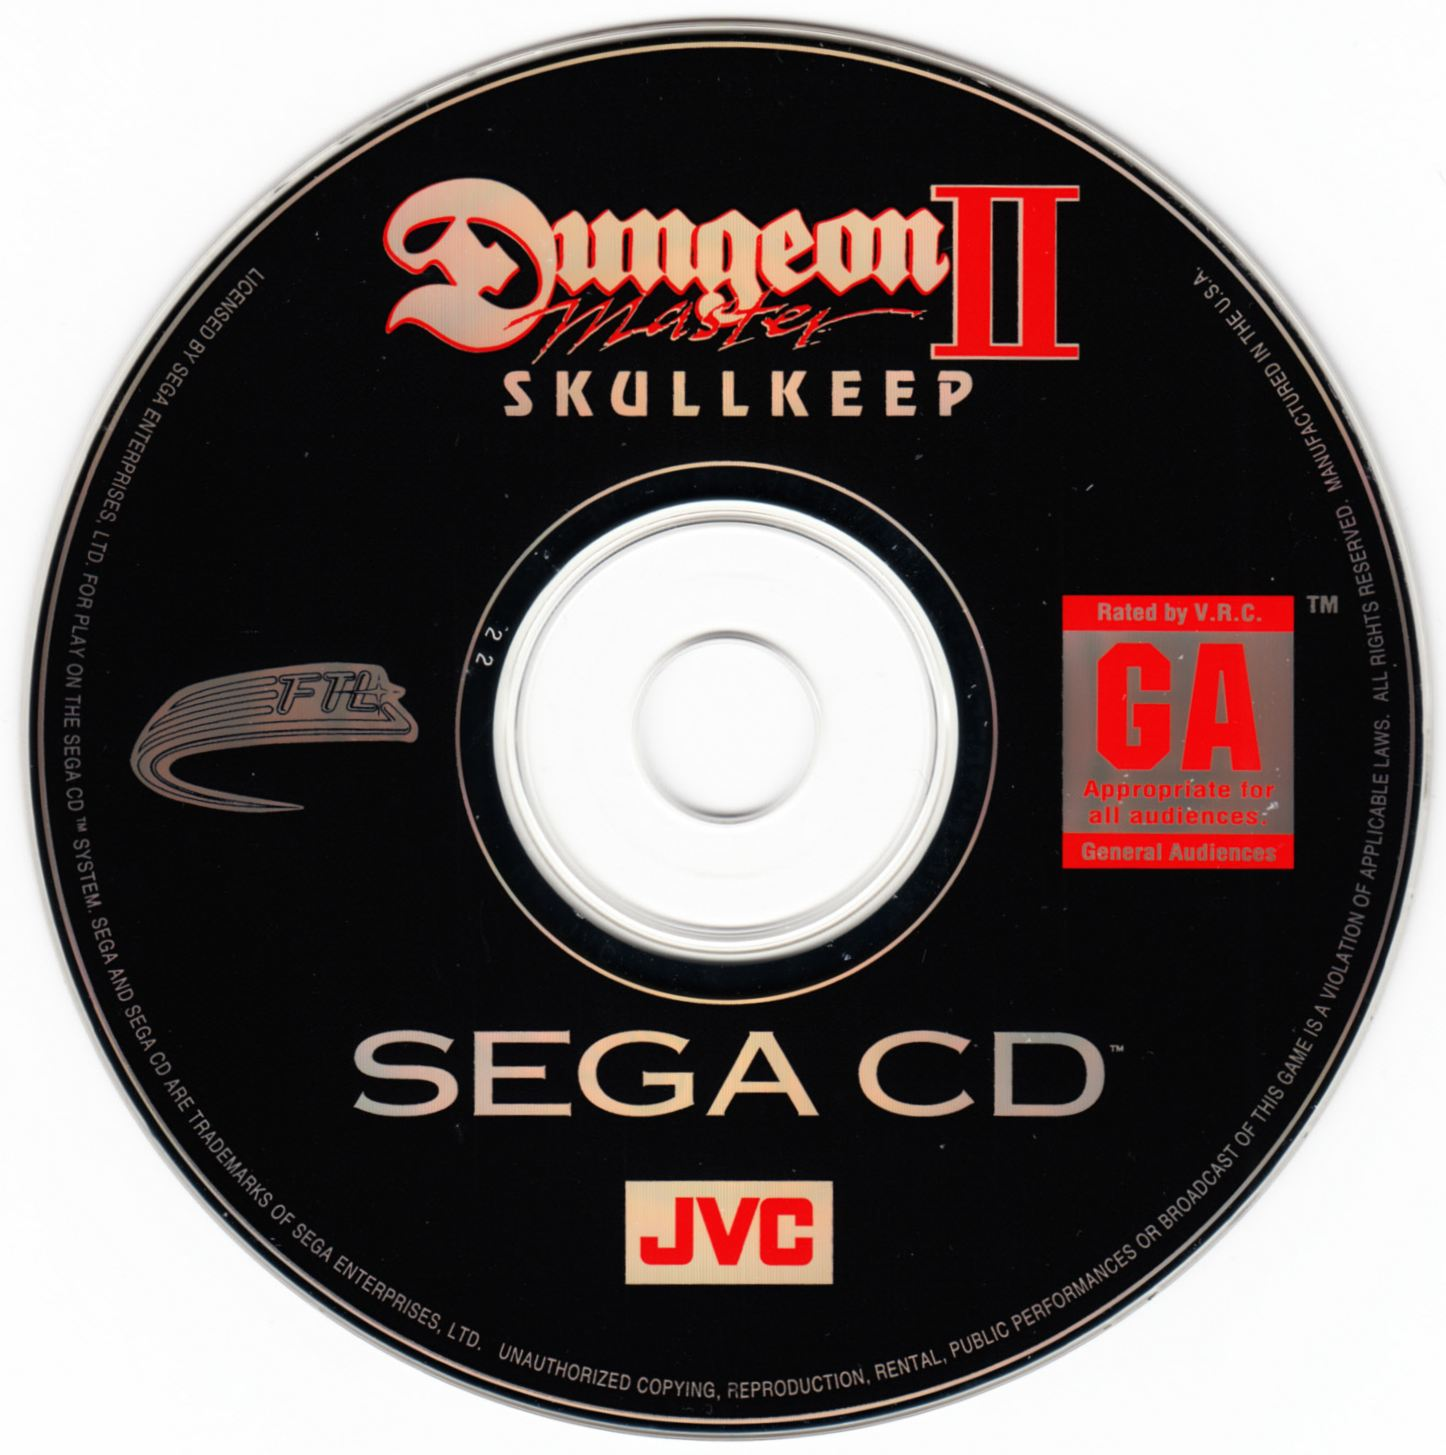 Game - Dungeon Master II - US - Sega CD - Compact Disc - Front - Scan